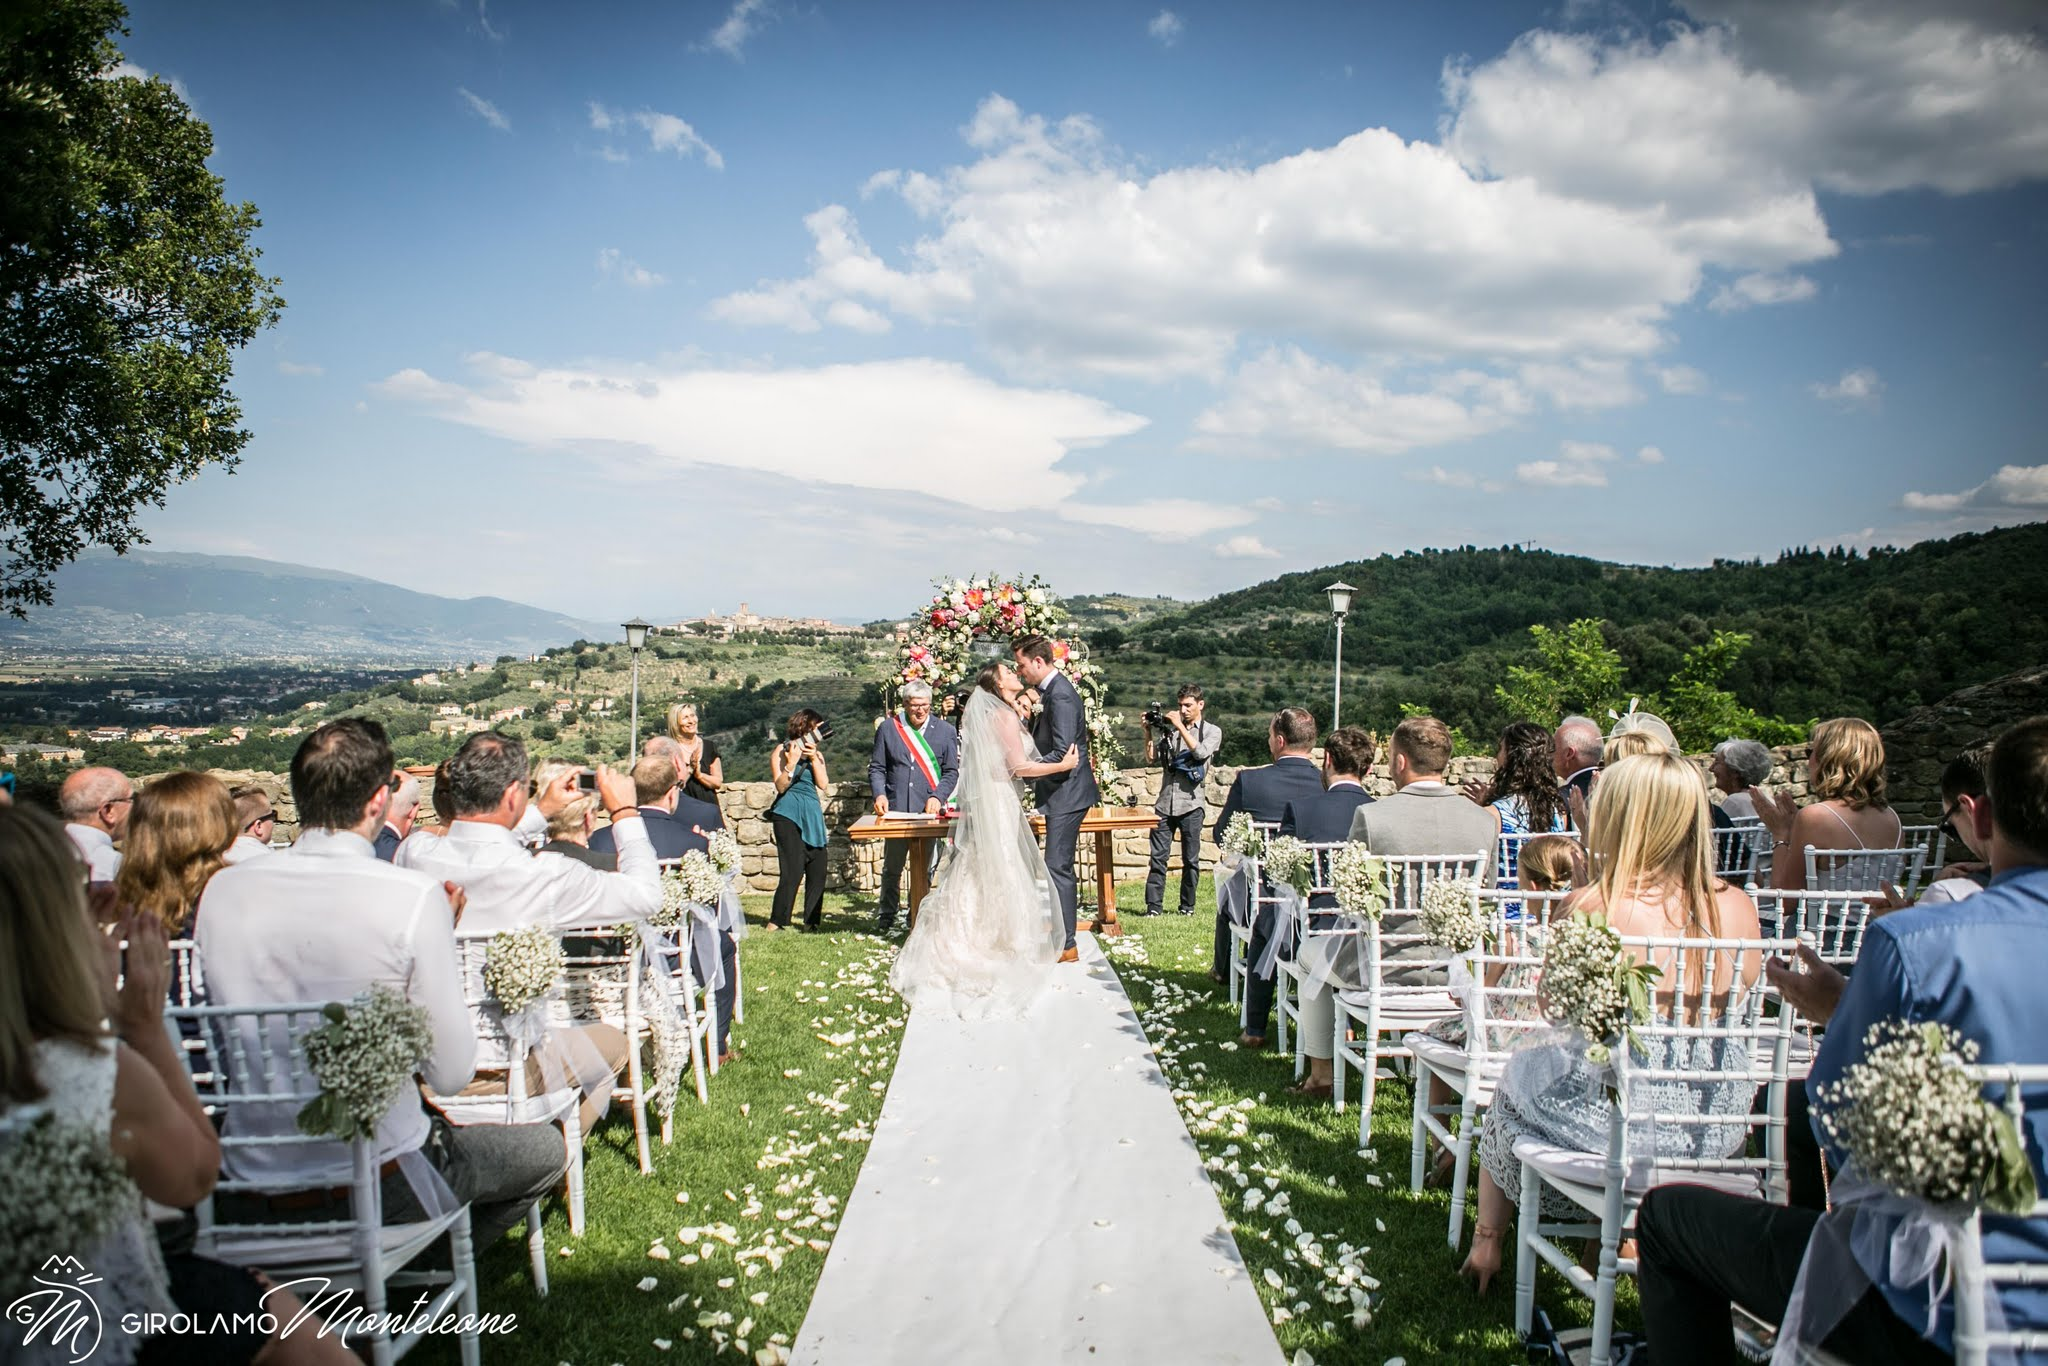 INTIMATE WEDDING | il matrimonio intimo